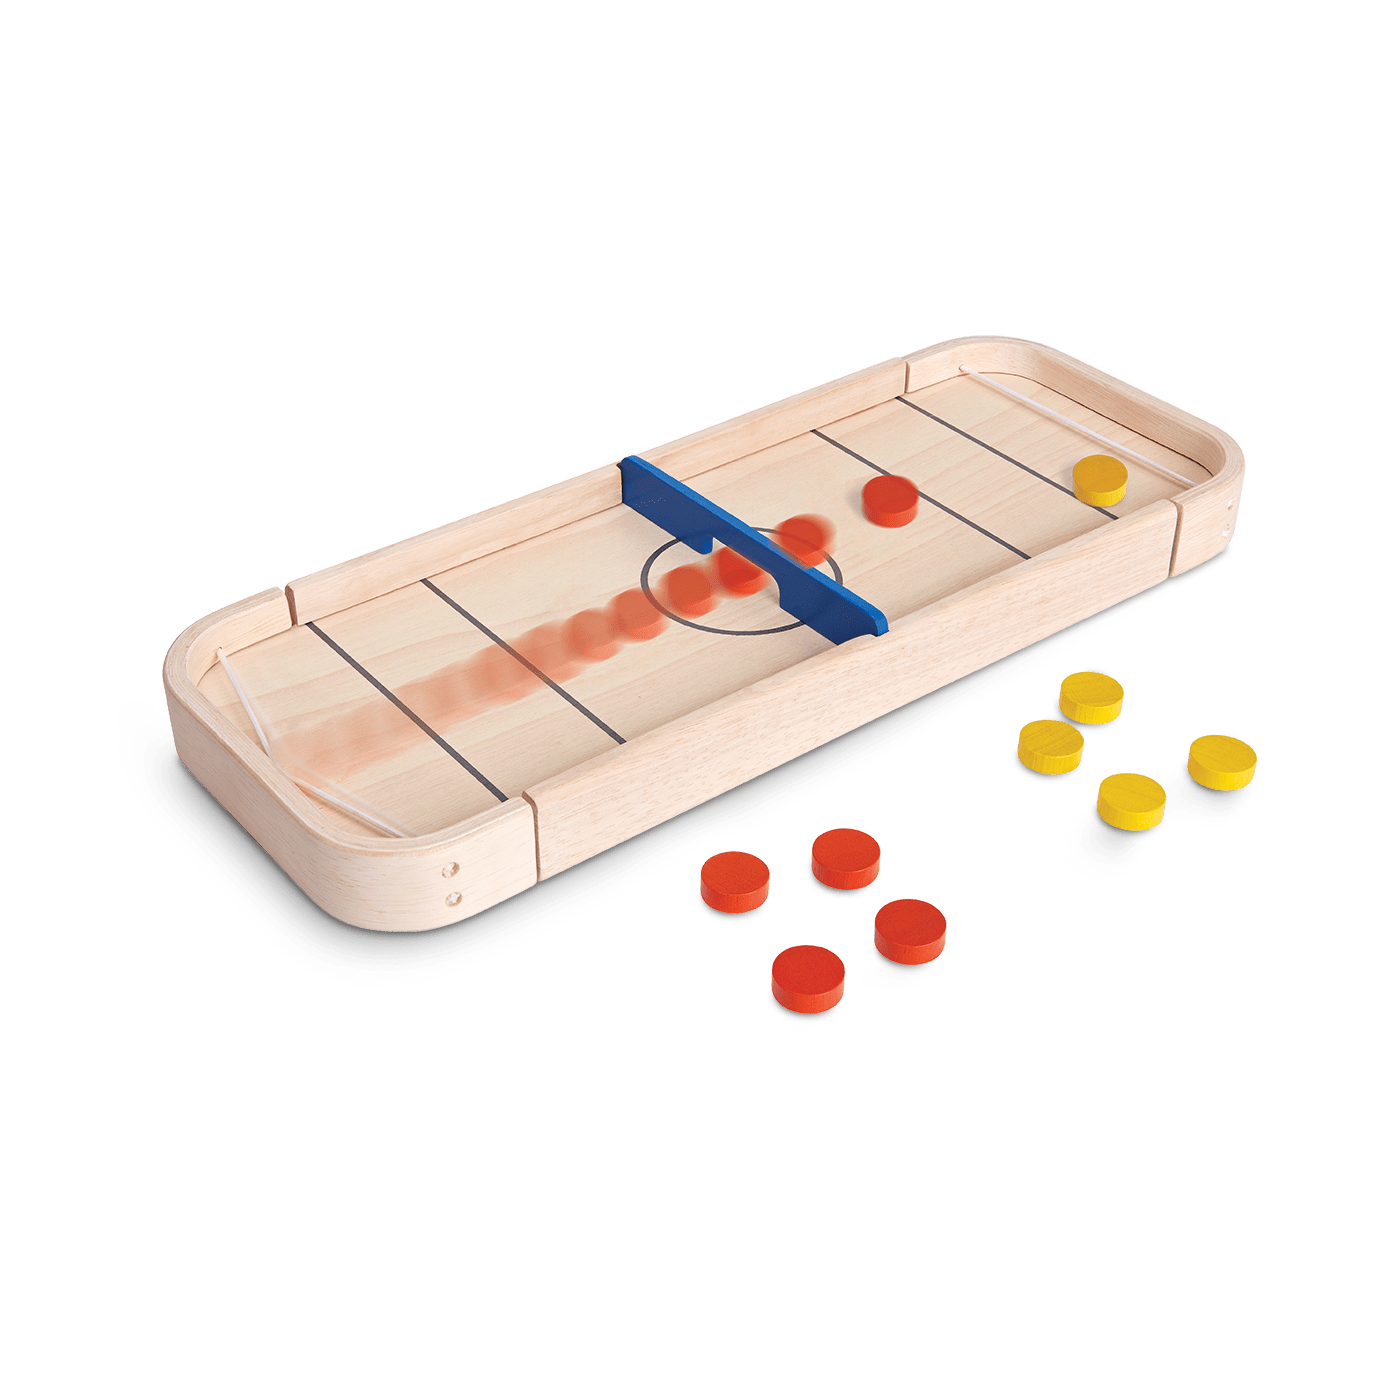 4626_PlanToys_2-IN-1_SHUFFLEBOARD-GAME_Game_and_Puzzles_Fine_Motor_Coordination_Social_Language_and_Communications_Mathematical_3yrs_Wooden_toys_Education_toys_Safety_Toys_Non-toxic_0.png